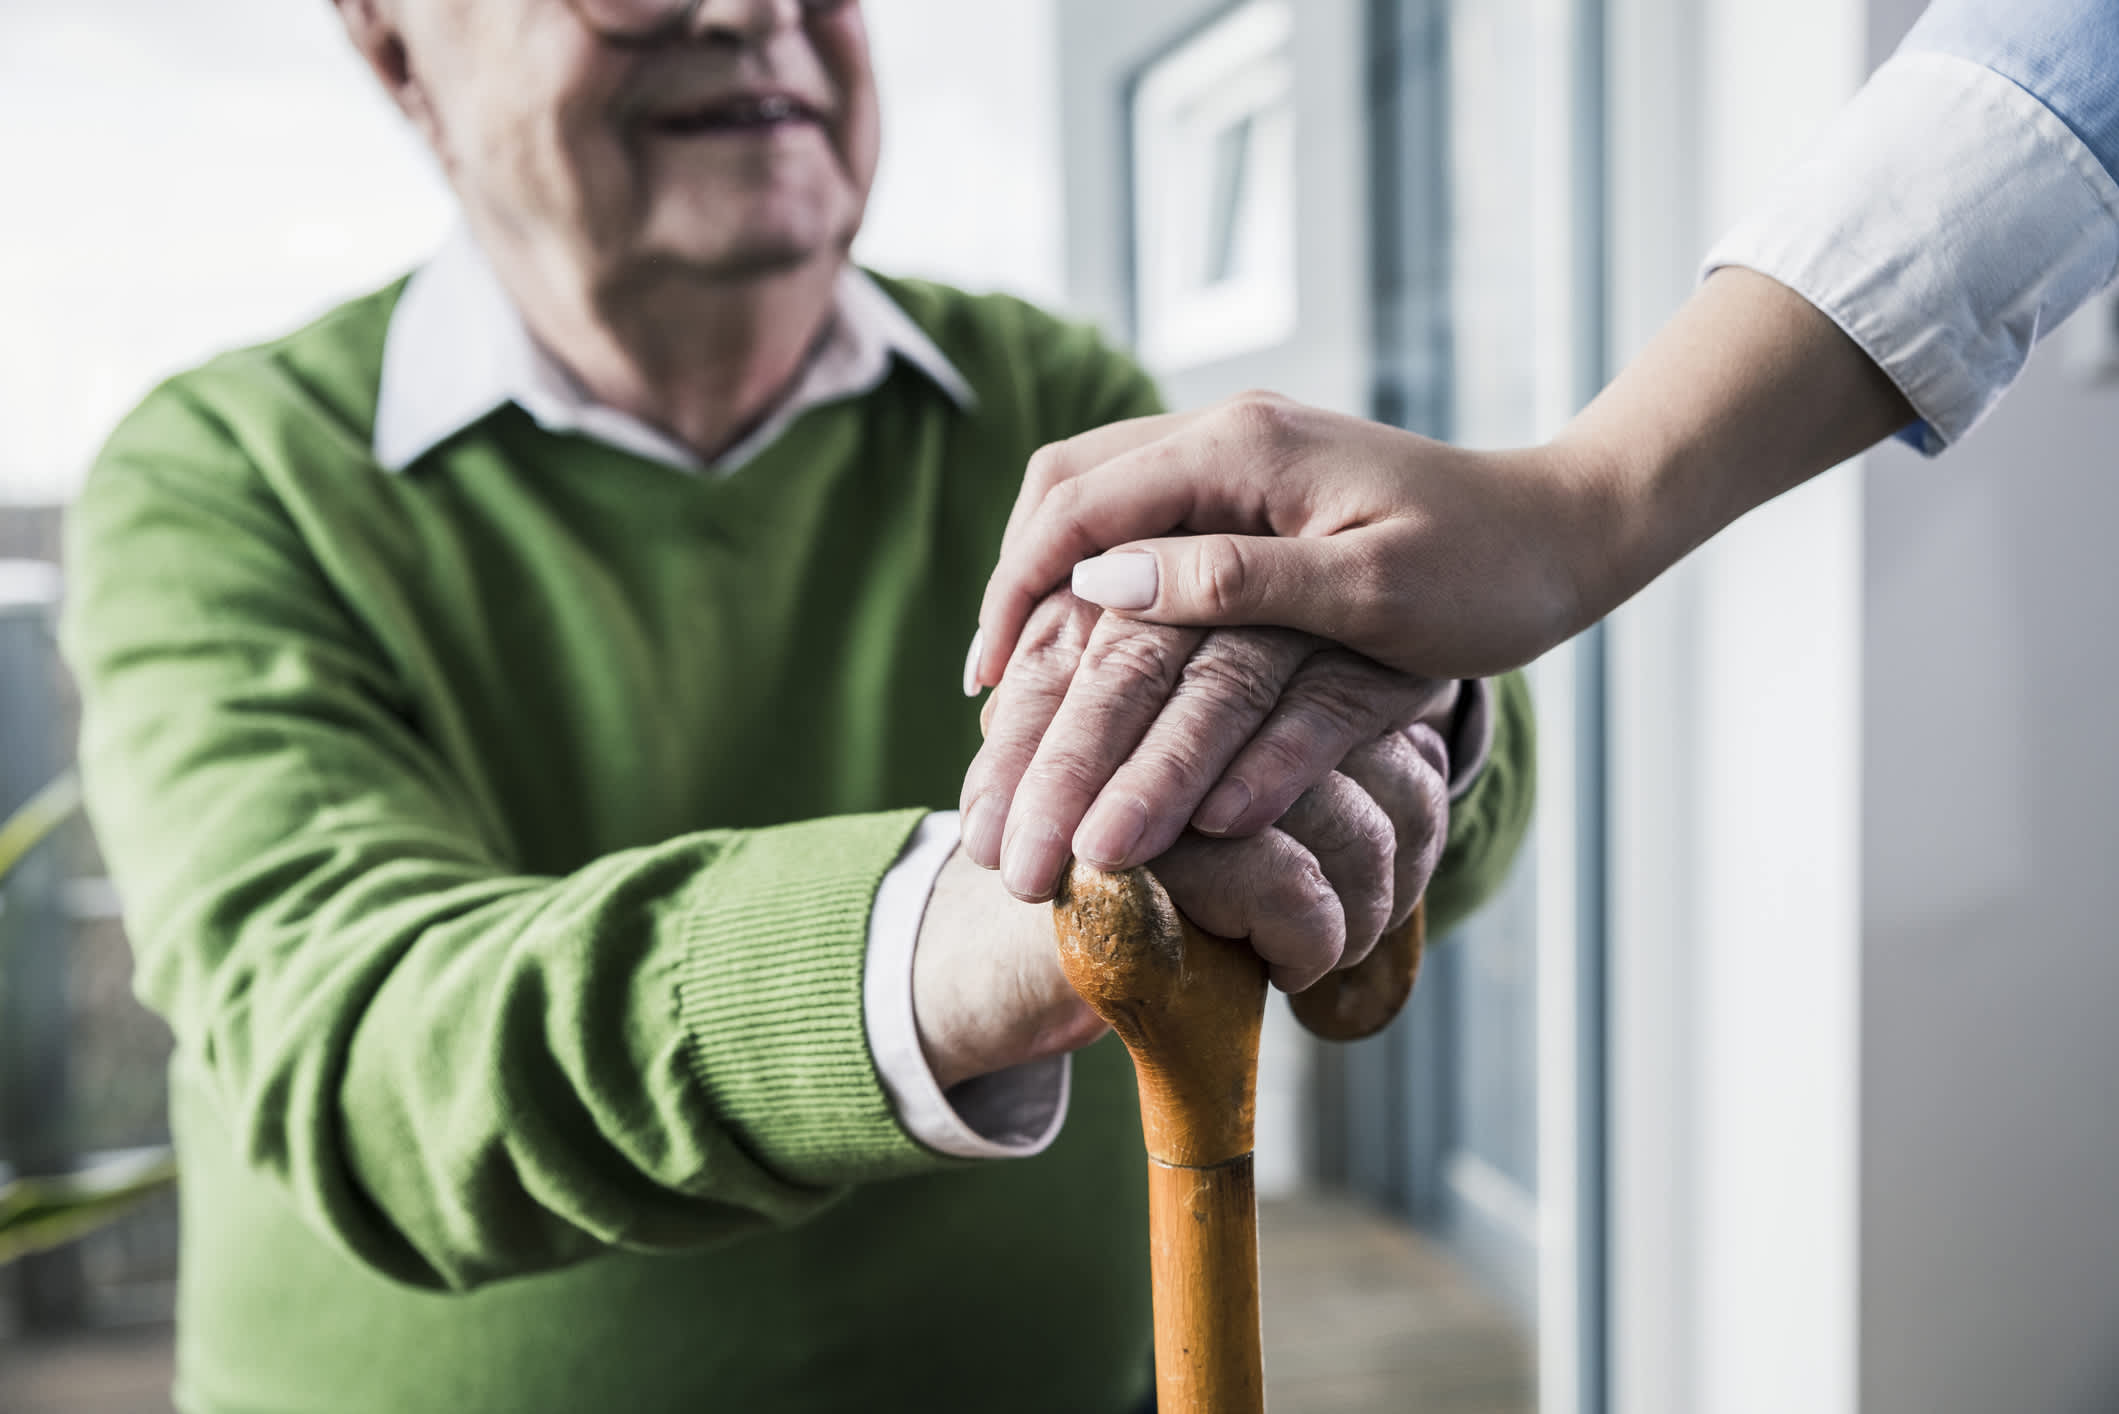 Here's what advisors can do if they suspect a senior is being financially abused or exploited